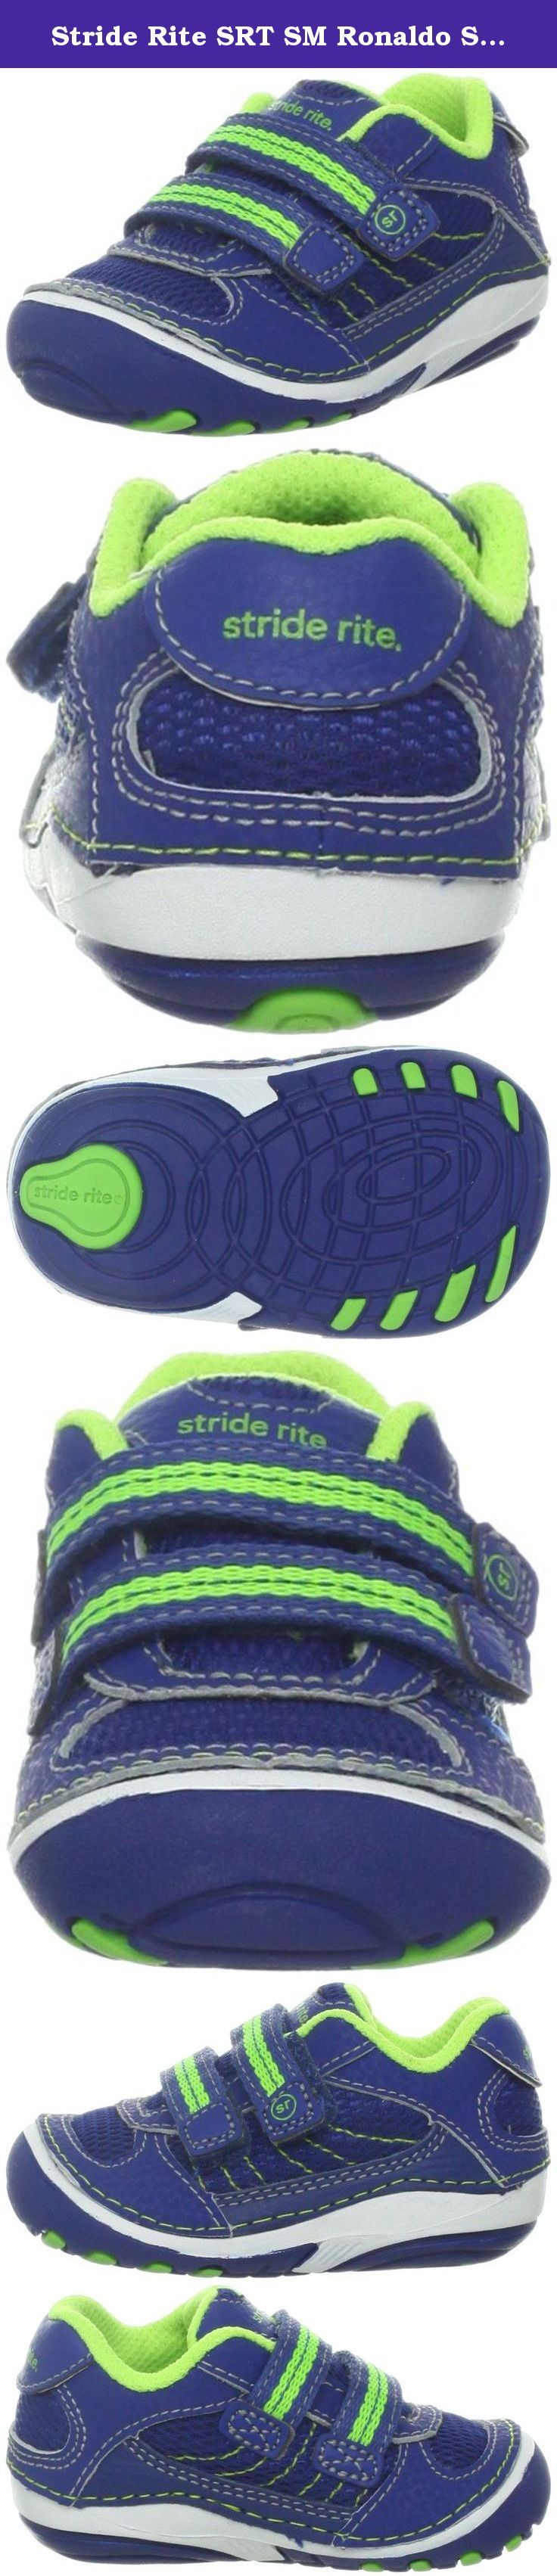 Stride Rite SRT SM Ronaldo Sneaker (Infant/Toddler),Blue/Green,3 W US Infant. Dual hook-and-loop closure straps secure a play-ready sneaker constructed with rounded edges and signature Sensory Response Technology so your little one can develop a stable, natural gait. Color(s): blue/ green. Brand: Stride Rite. Style Name: Stride Rite 'Ronaldo' Sneaker (Baby & Walker). Style Number: 667534. Manufacturer part number BB47442.